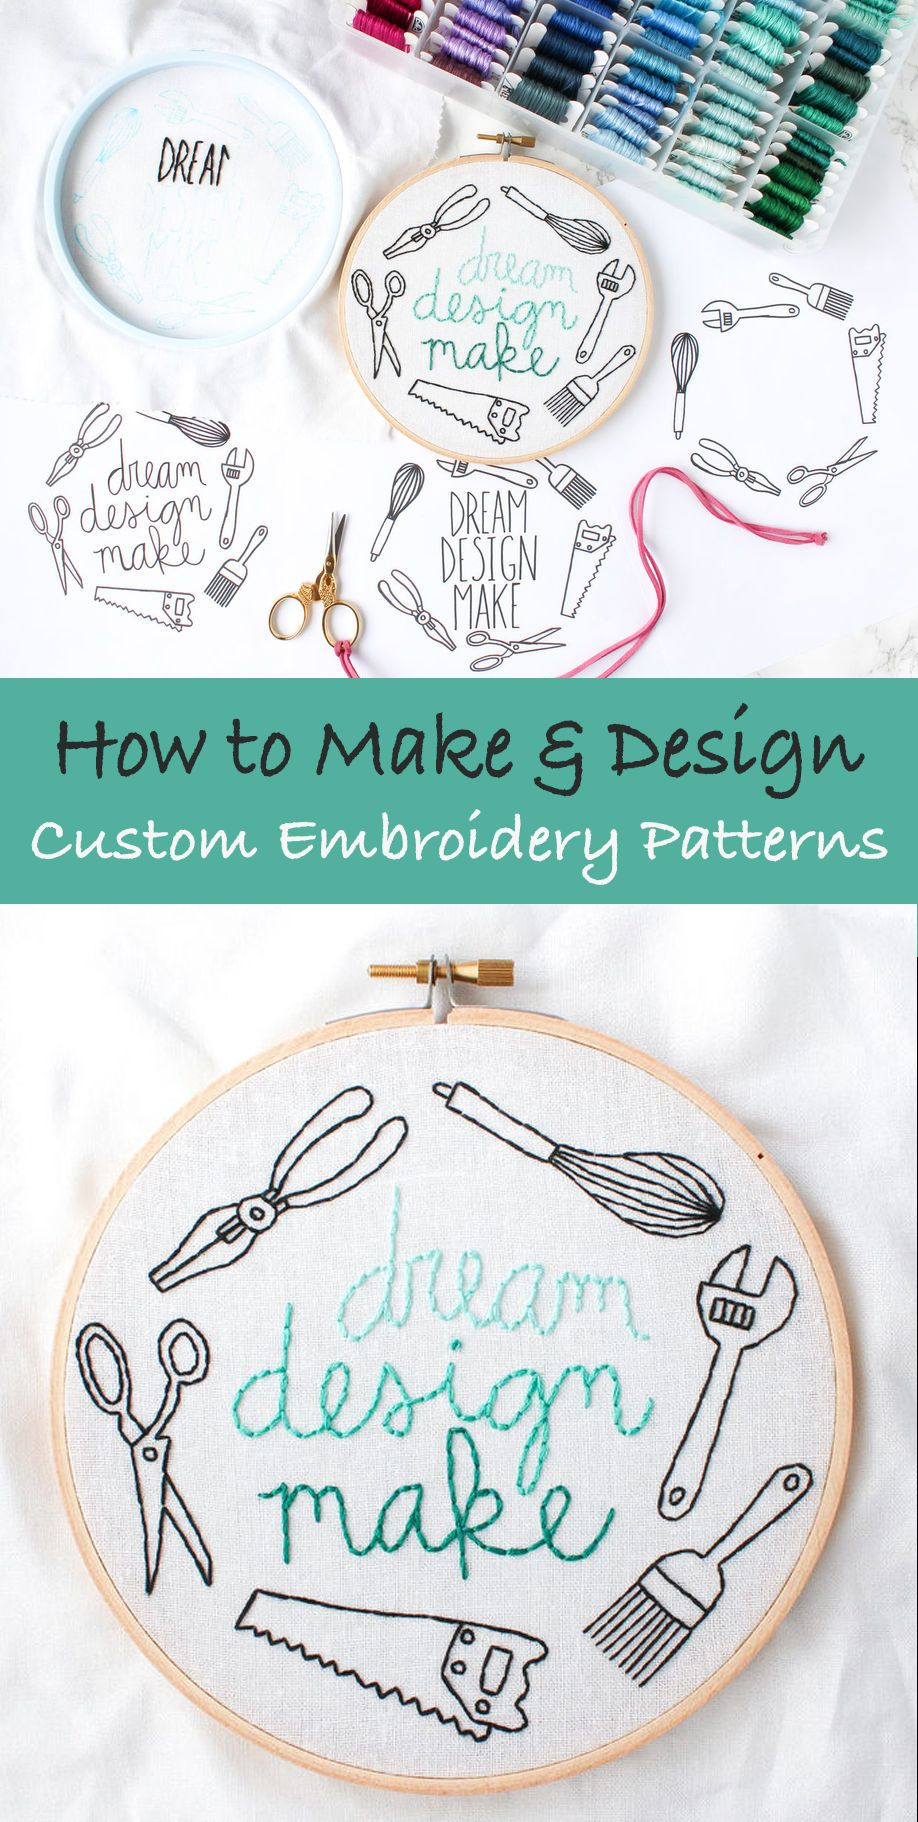 Dream design make free embroidery pattern embroidery patterns and